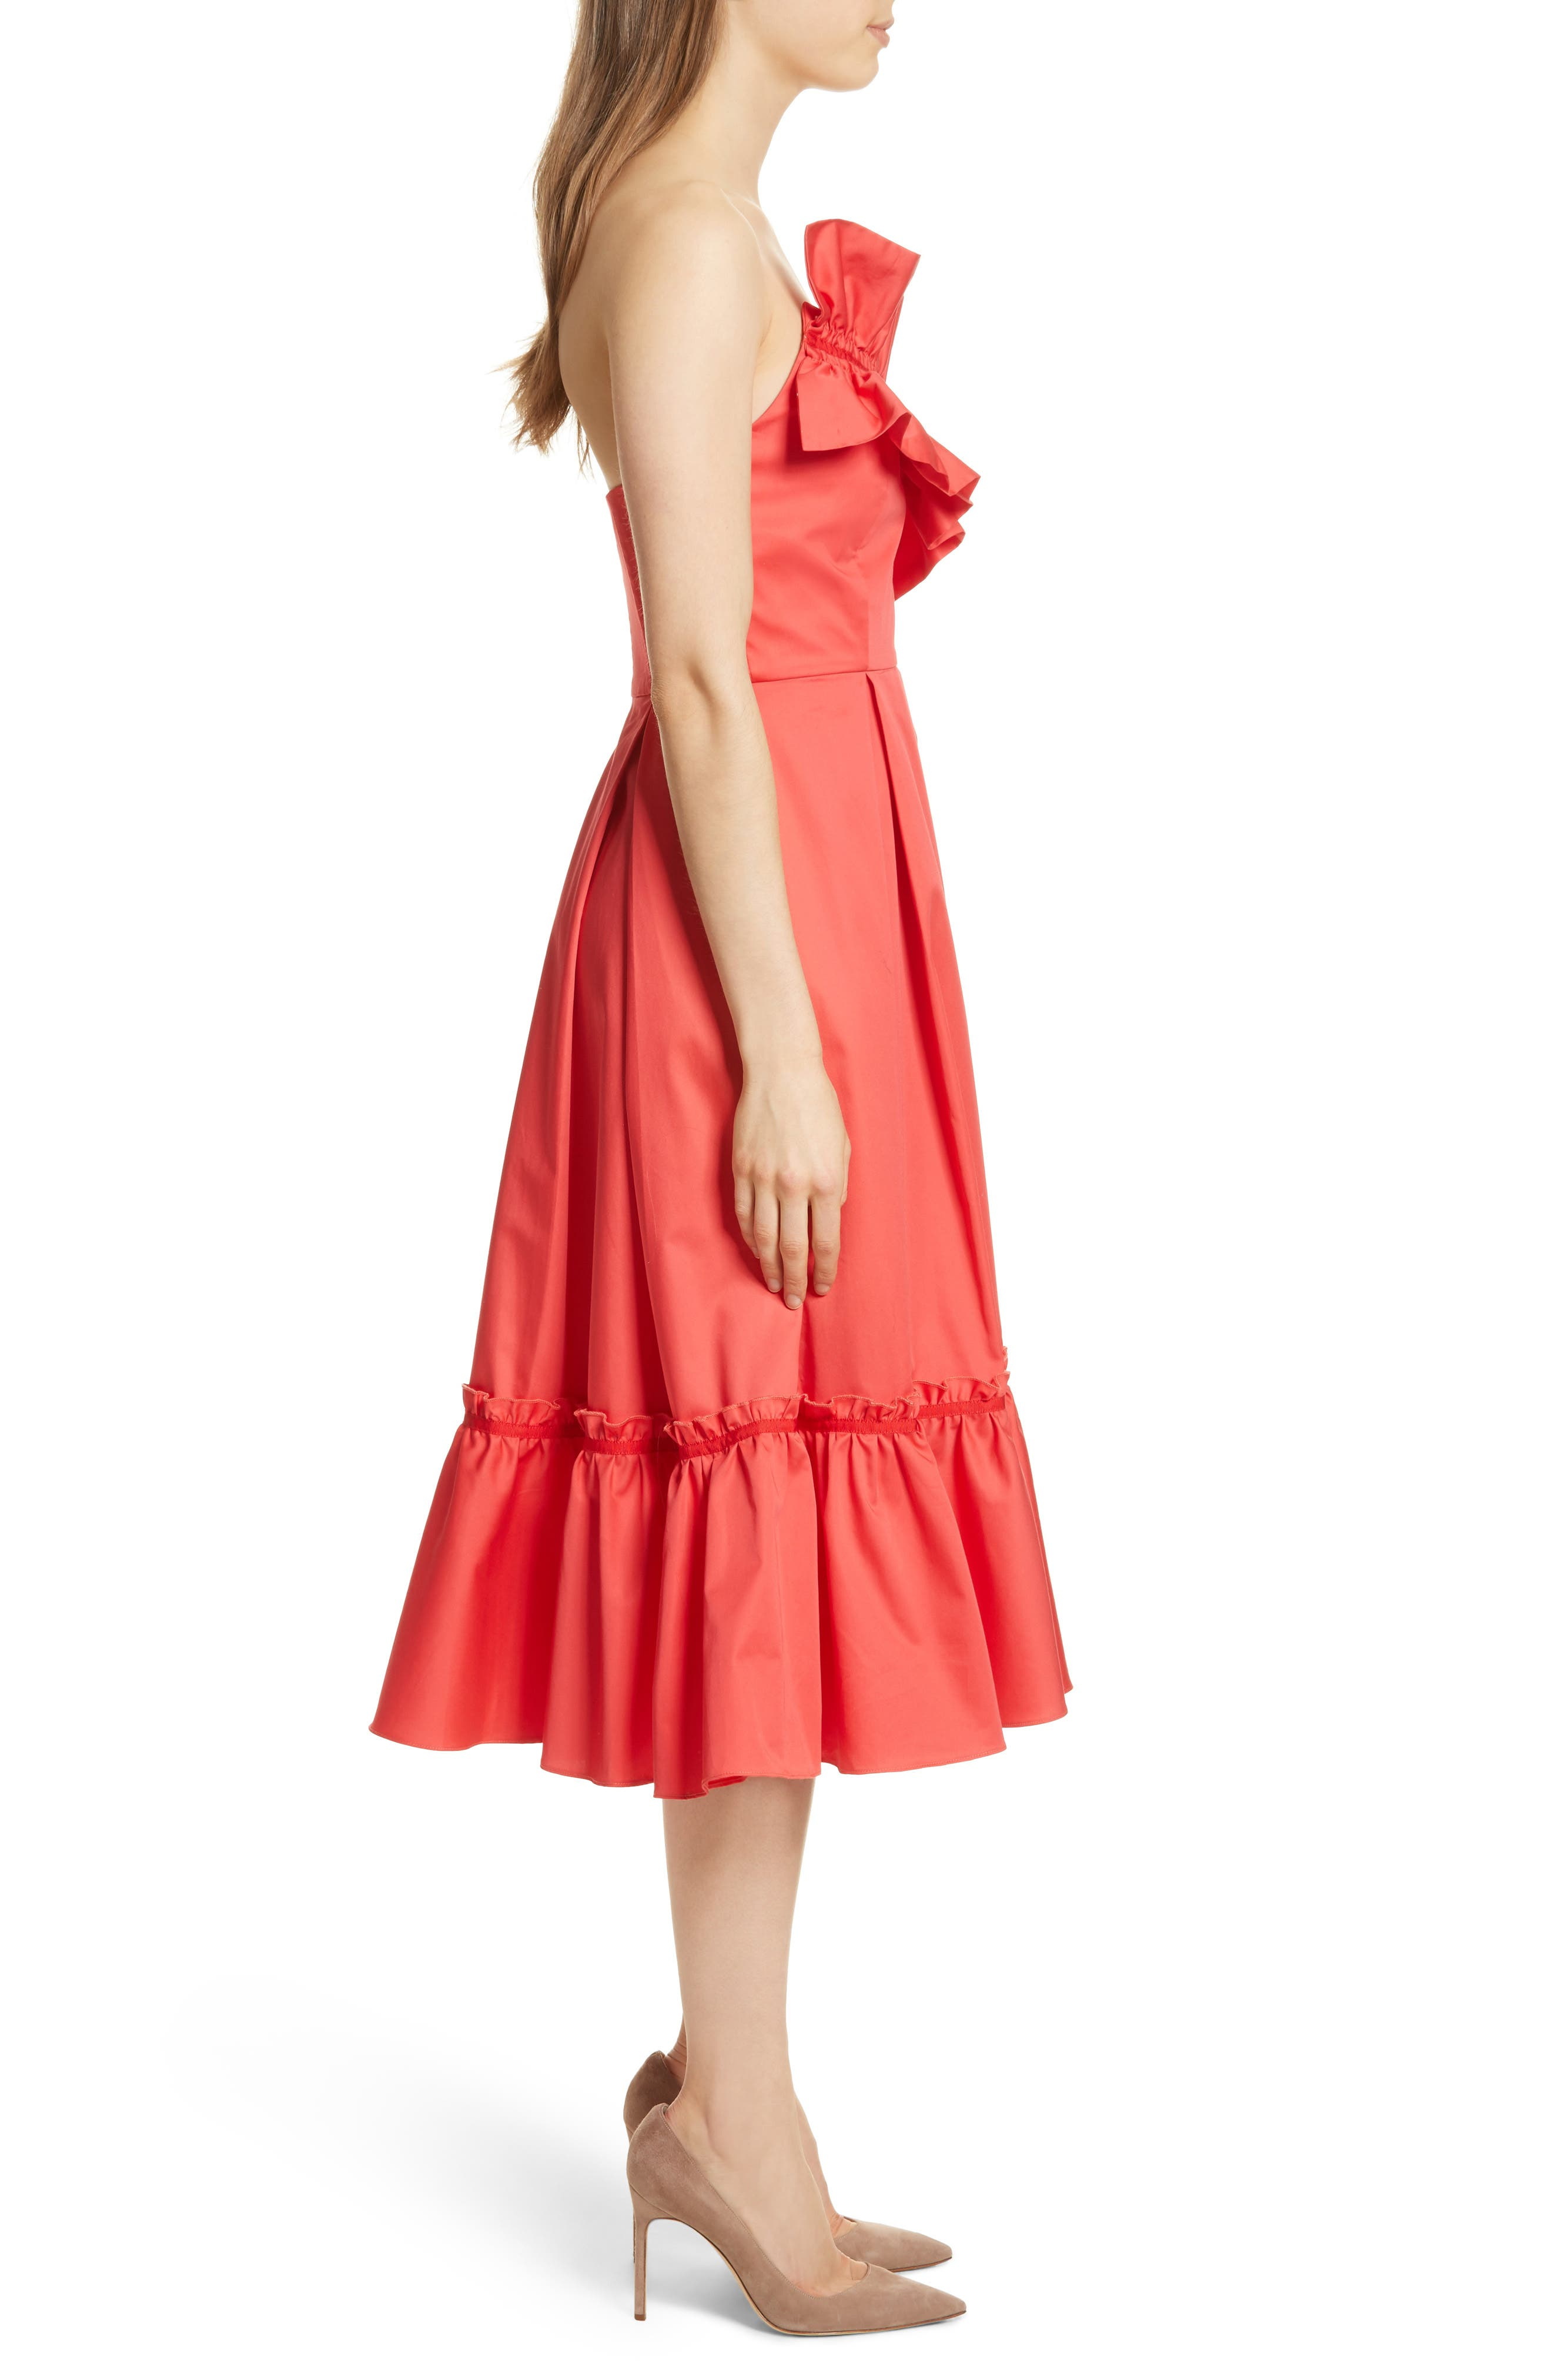 Prose & Poetry Harlow Ruffle Trim Strapless Dress,                             Alternate thumbnail 3, color,